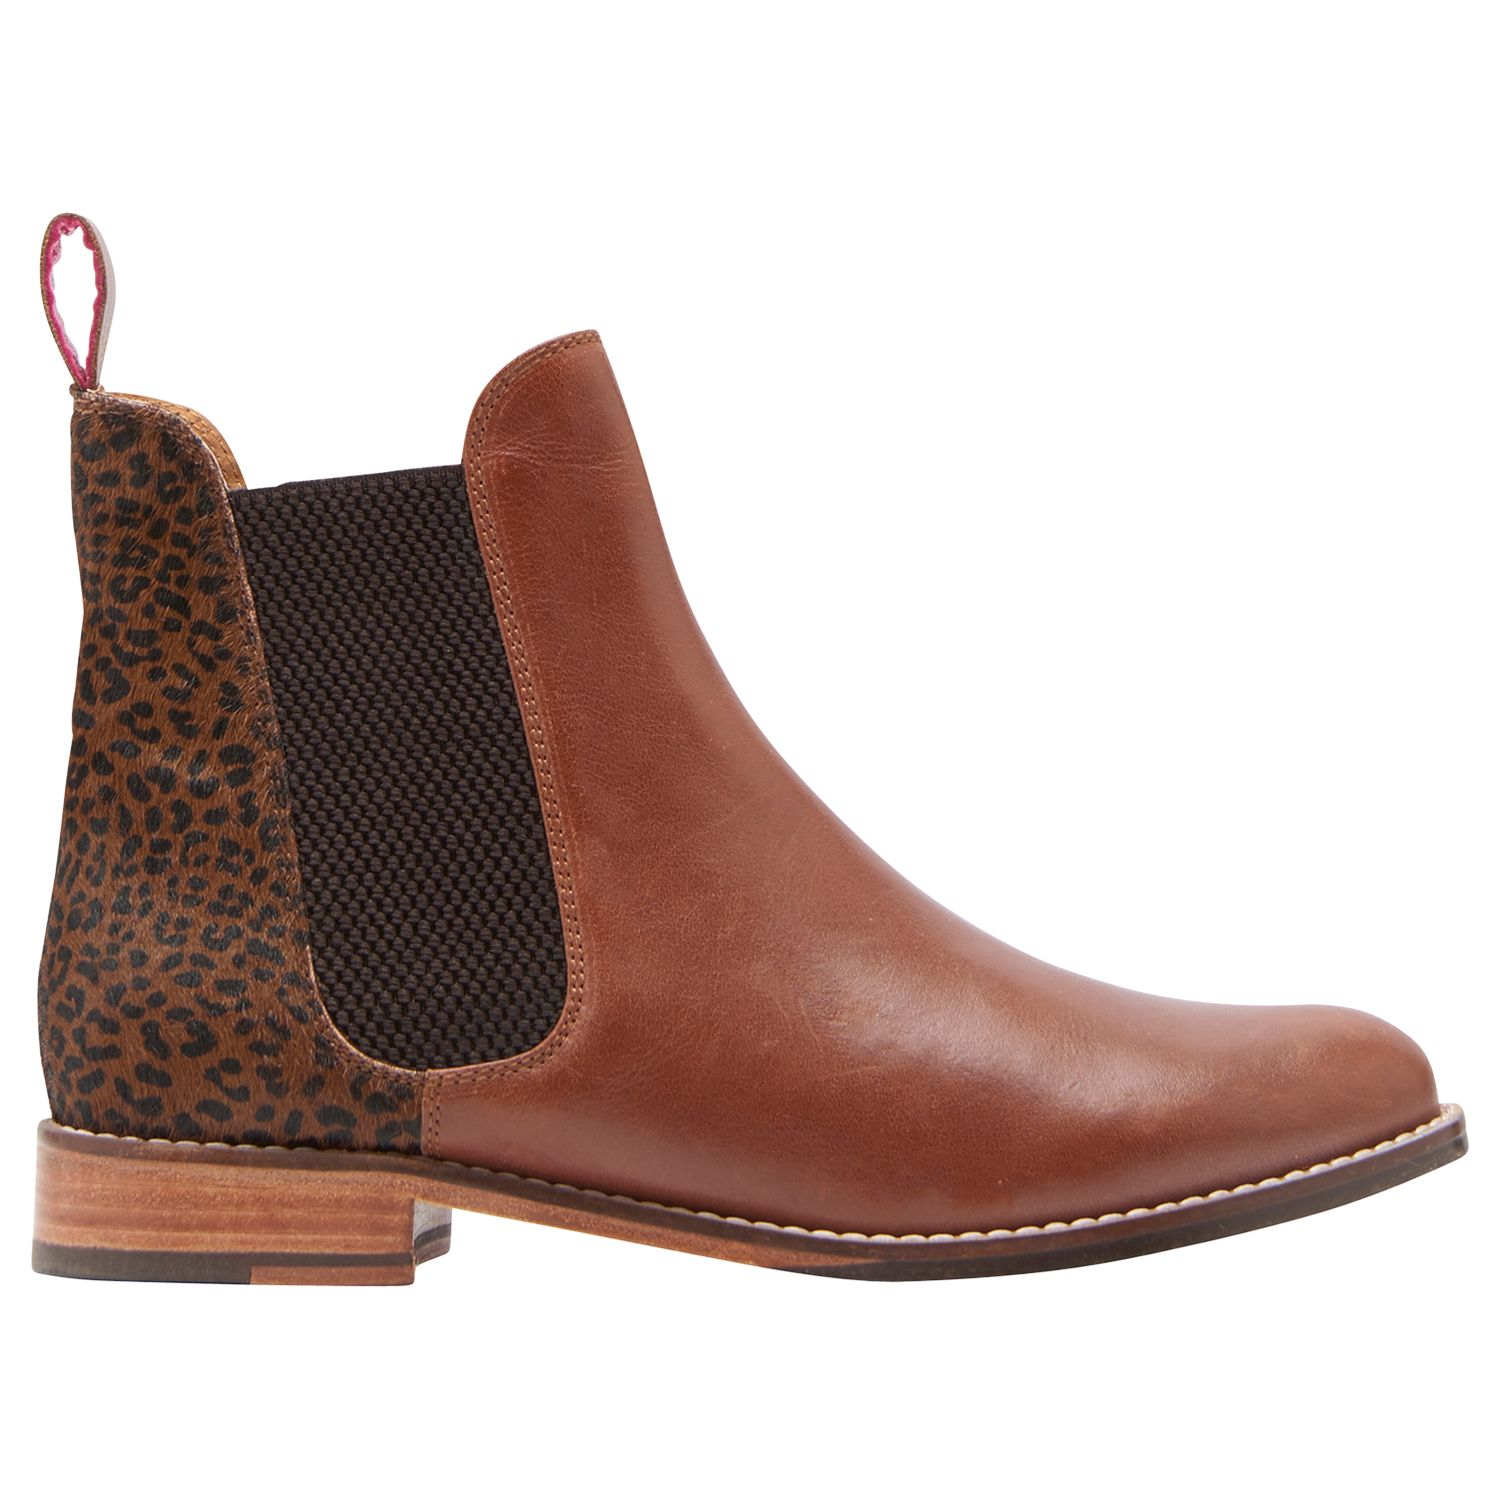 14735210b Joules Westbourne Leather Chelsea Boots, Brown/Leopard at John Lewis &  Partners